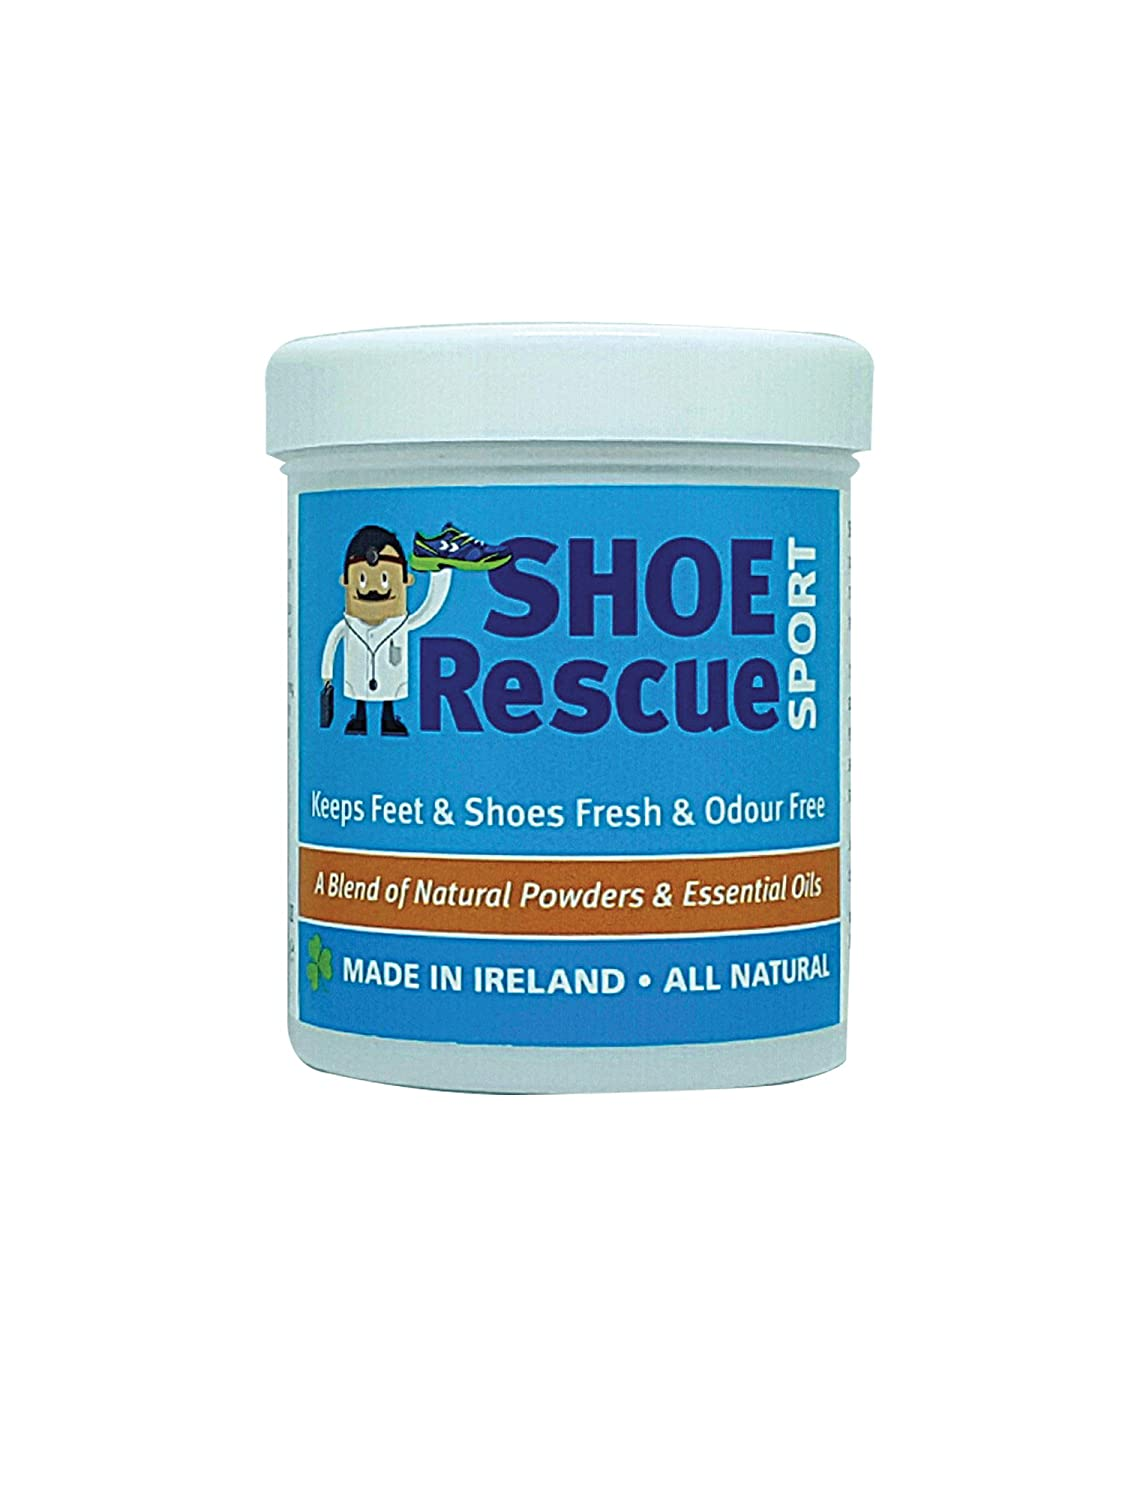 Foot and shoe powder 100g - Foot odour remover and eliminator - Developed by a registered podiatrist Shoe Rescue is a completely natural deodorant remedy to eliminate smelly shoes and feet - Contains